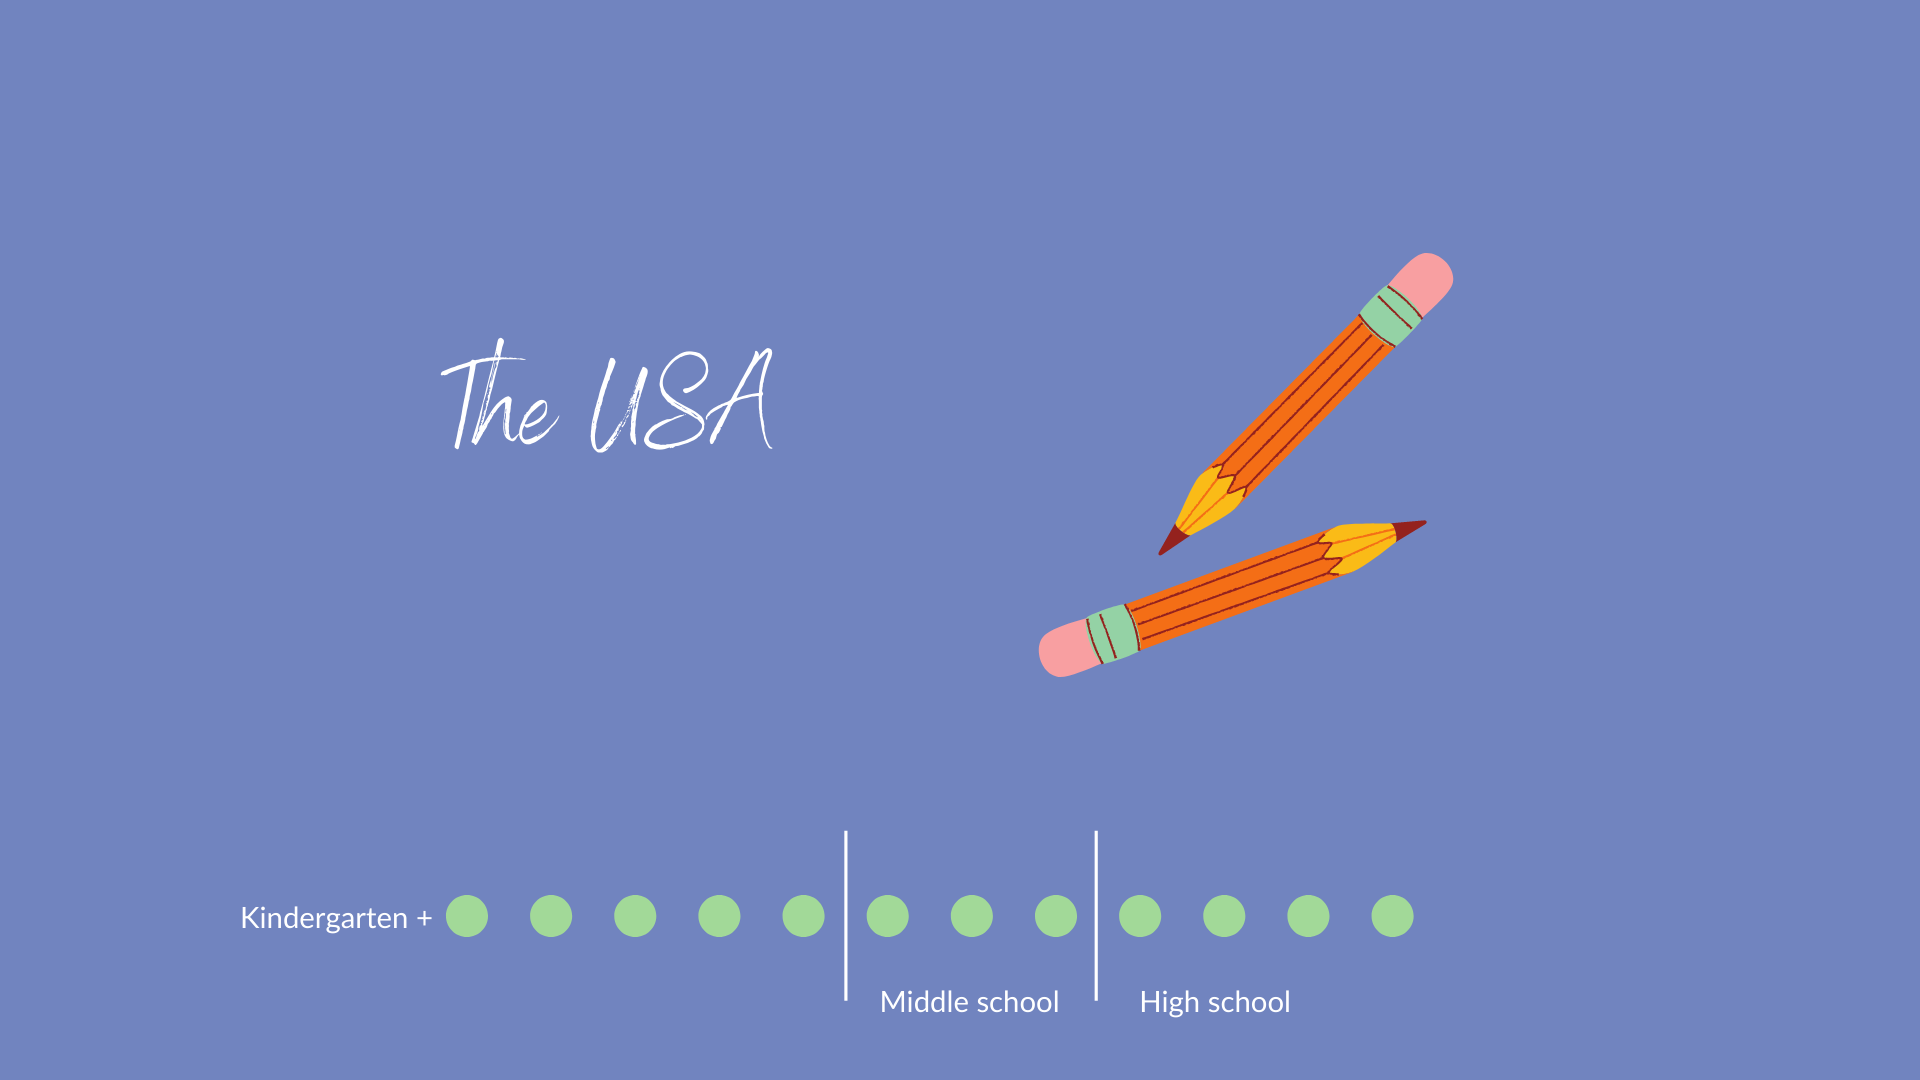 School system in the USA